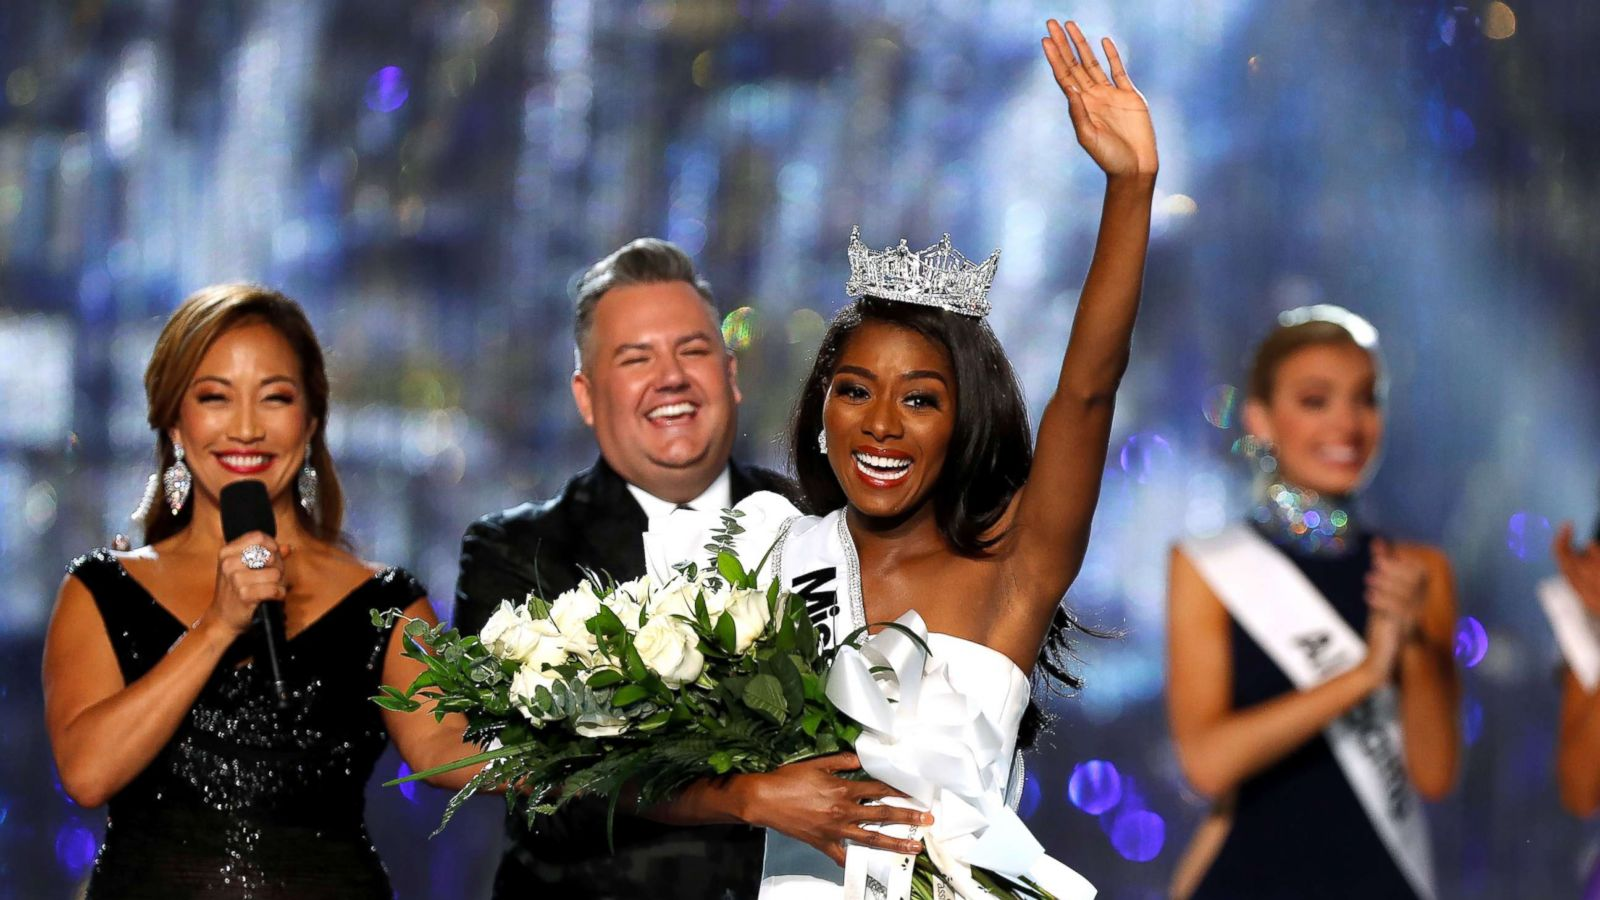 Miss New York America 01 Rt Mt Hpmain Nia Franklin On Being First Winner In Swimsuit Less Competition Im Part Of History Abc News